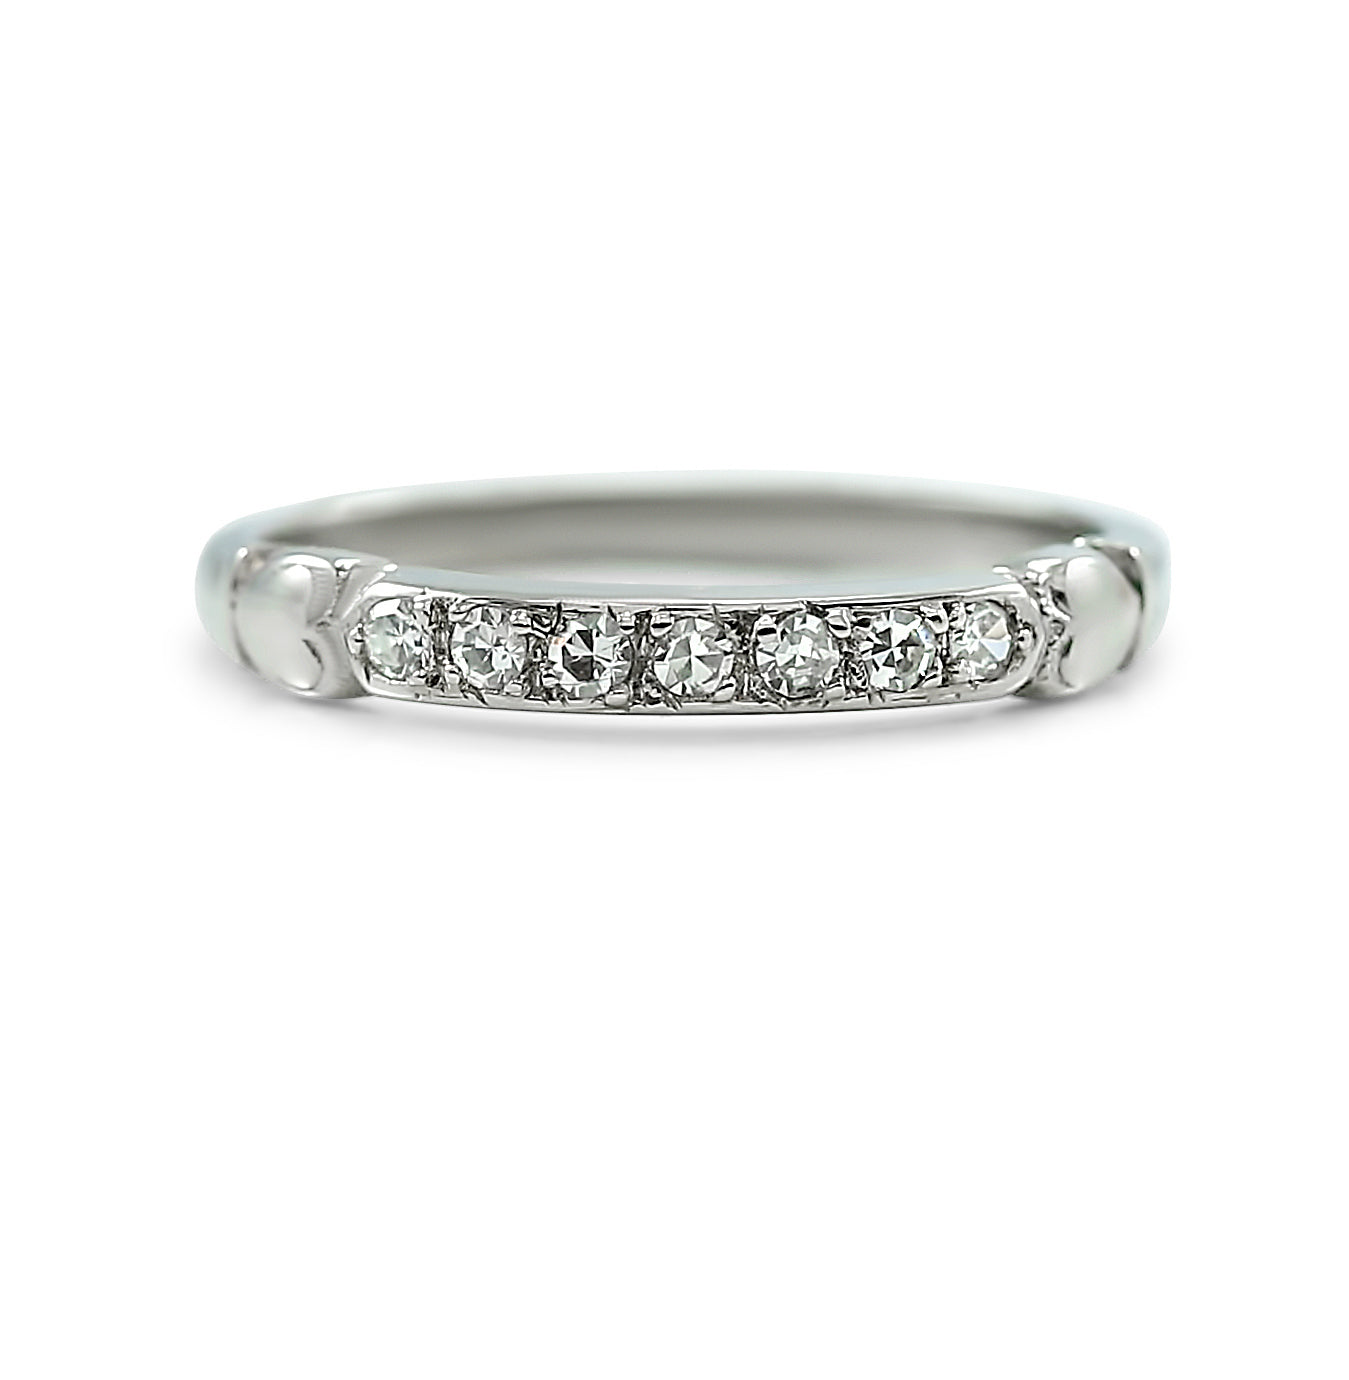 New Estate Wedding Bands & More! | Philadelphia Jeweler Has Estate Wedding Bands Available to Order Online or Buy in Studio